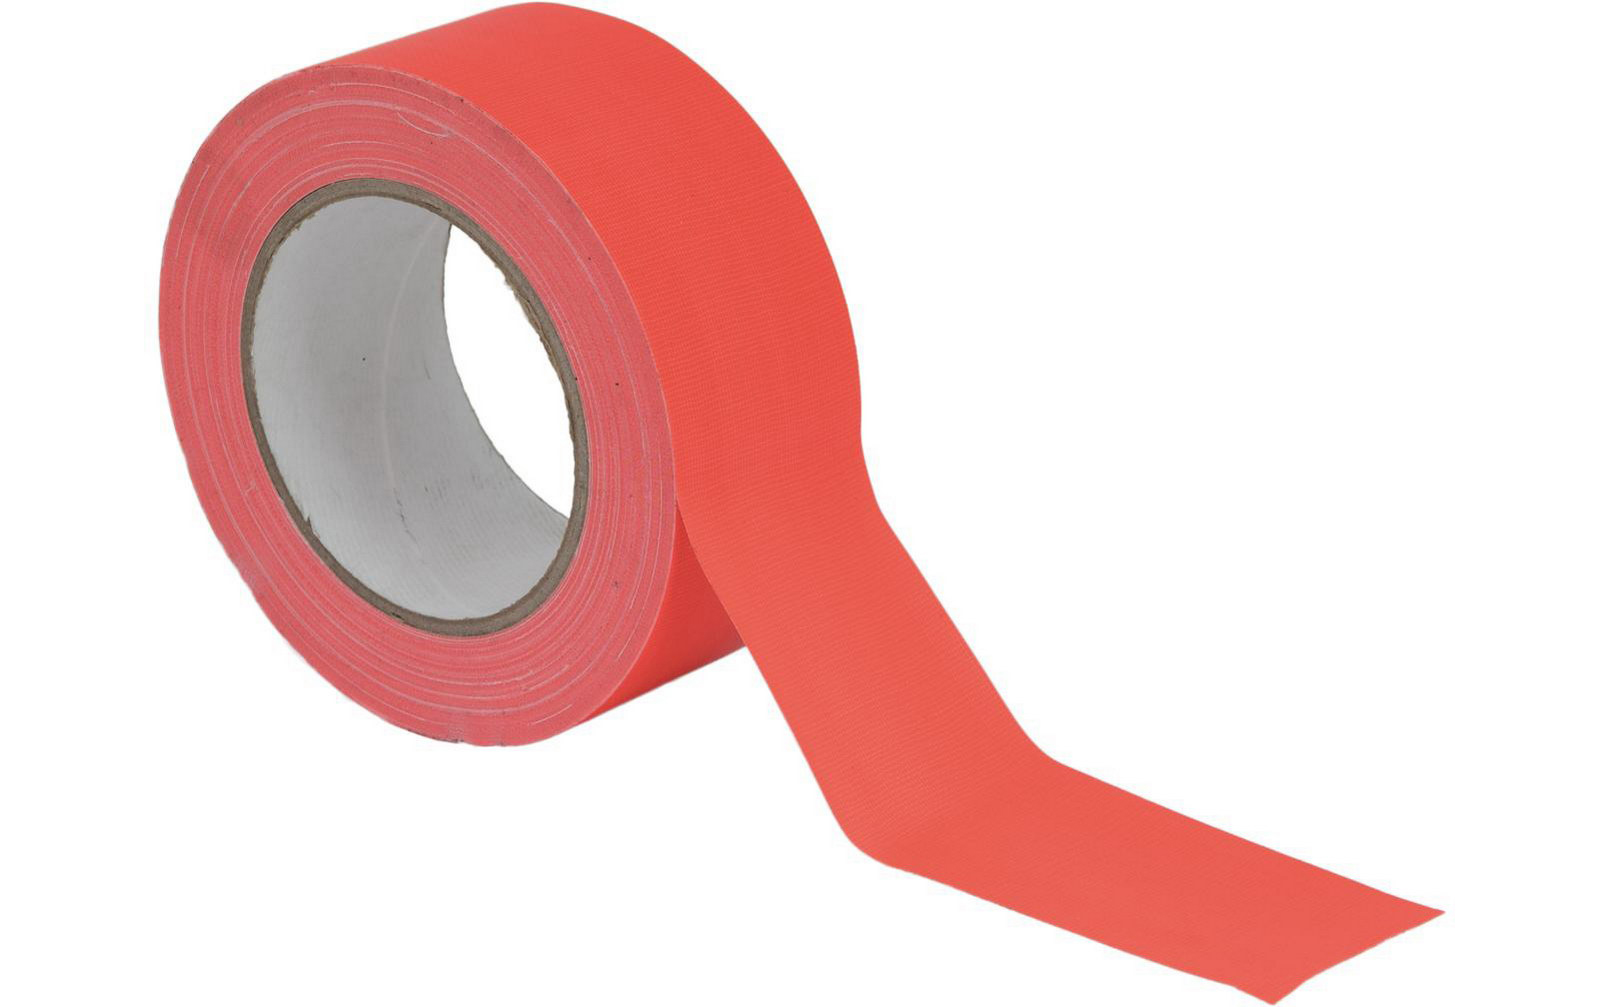 gaffa-tape-50mm-x-25m-neonorange-uv-aktiv